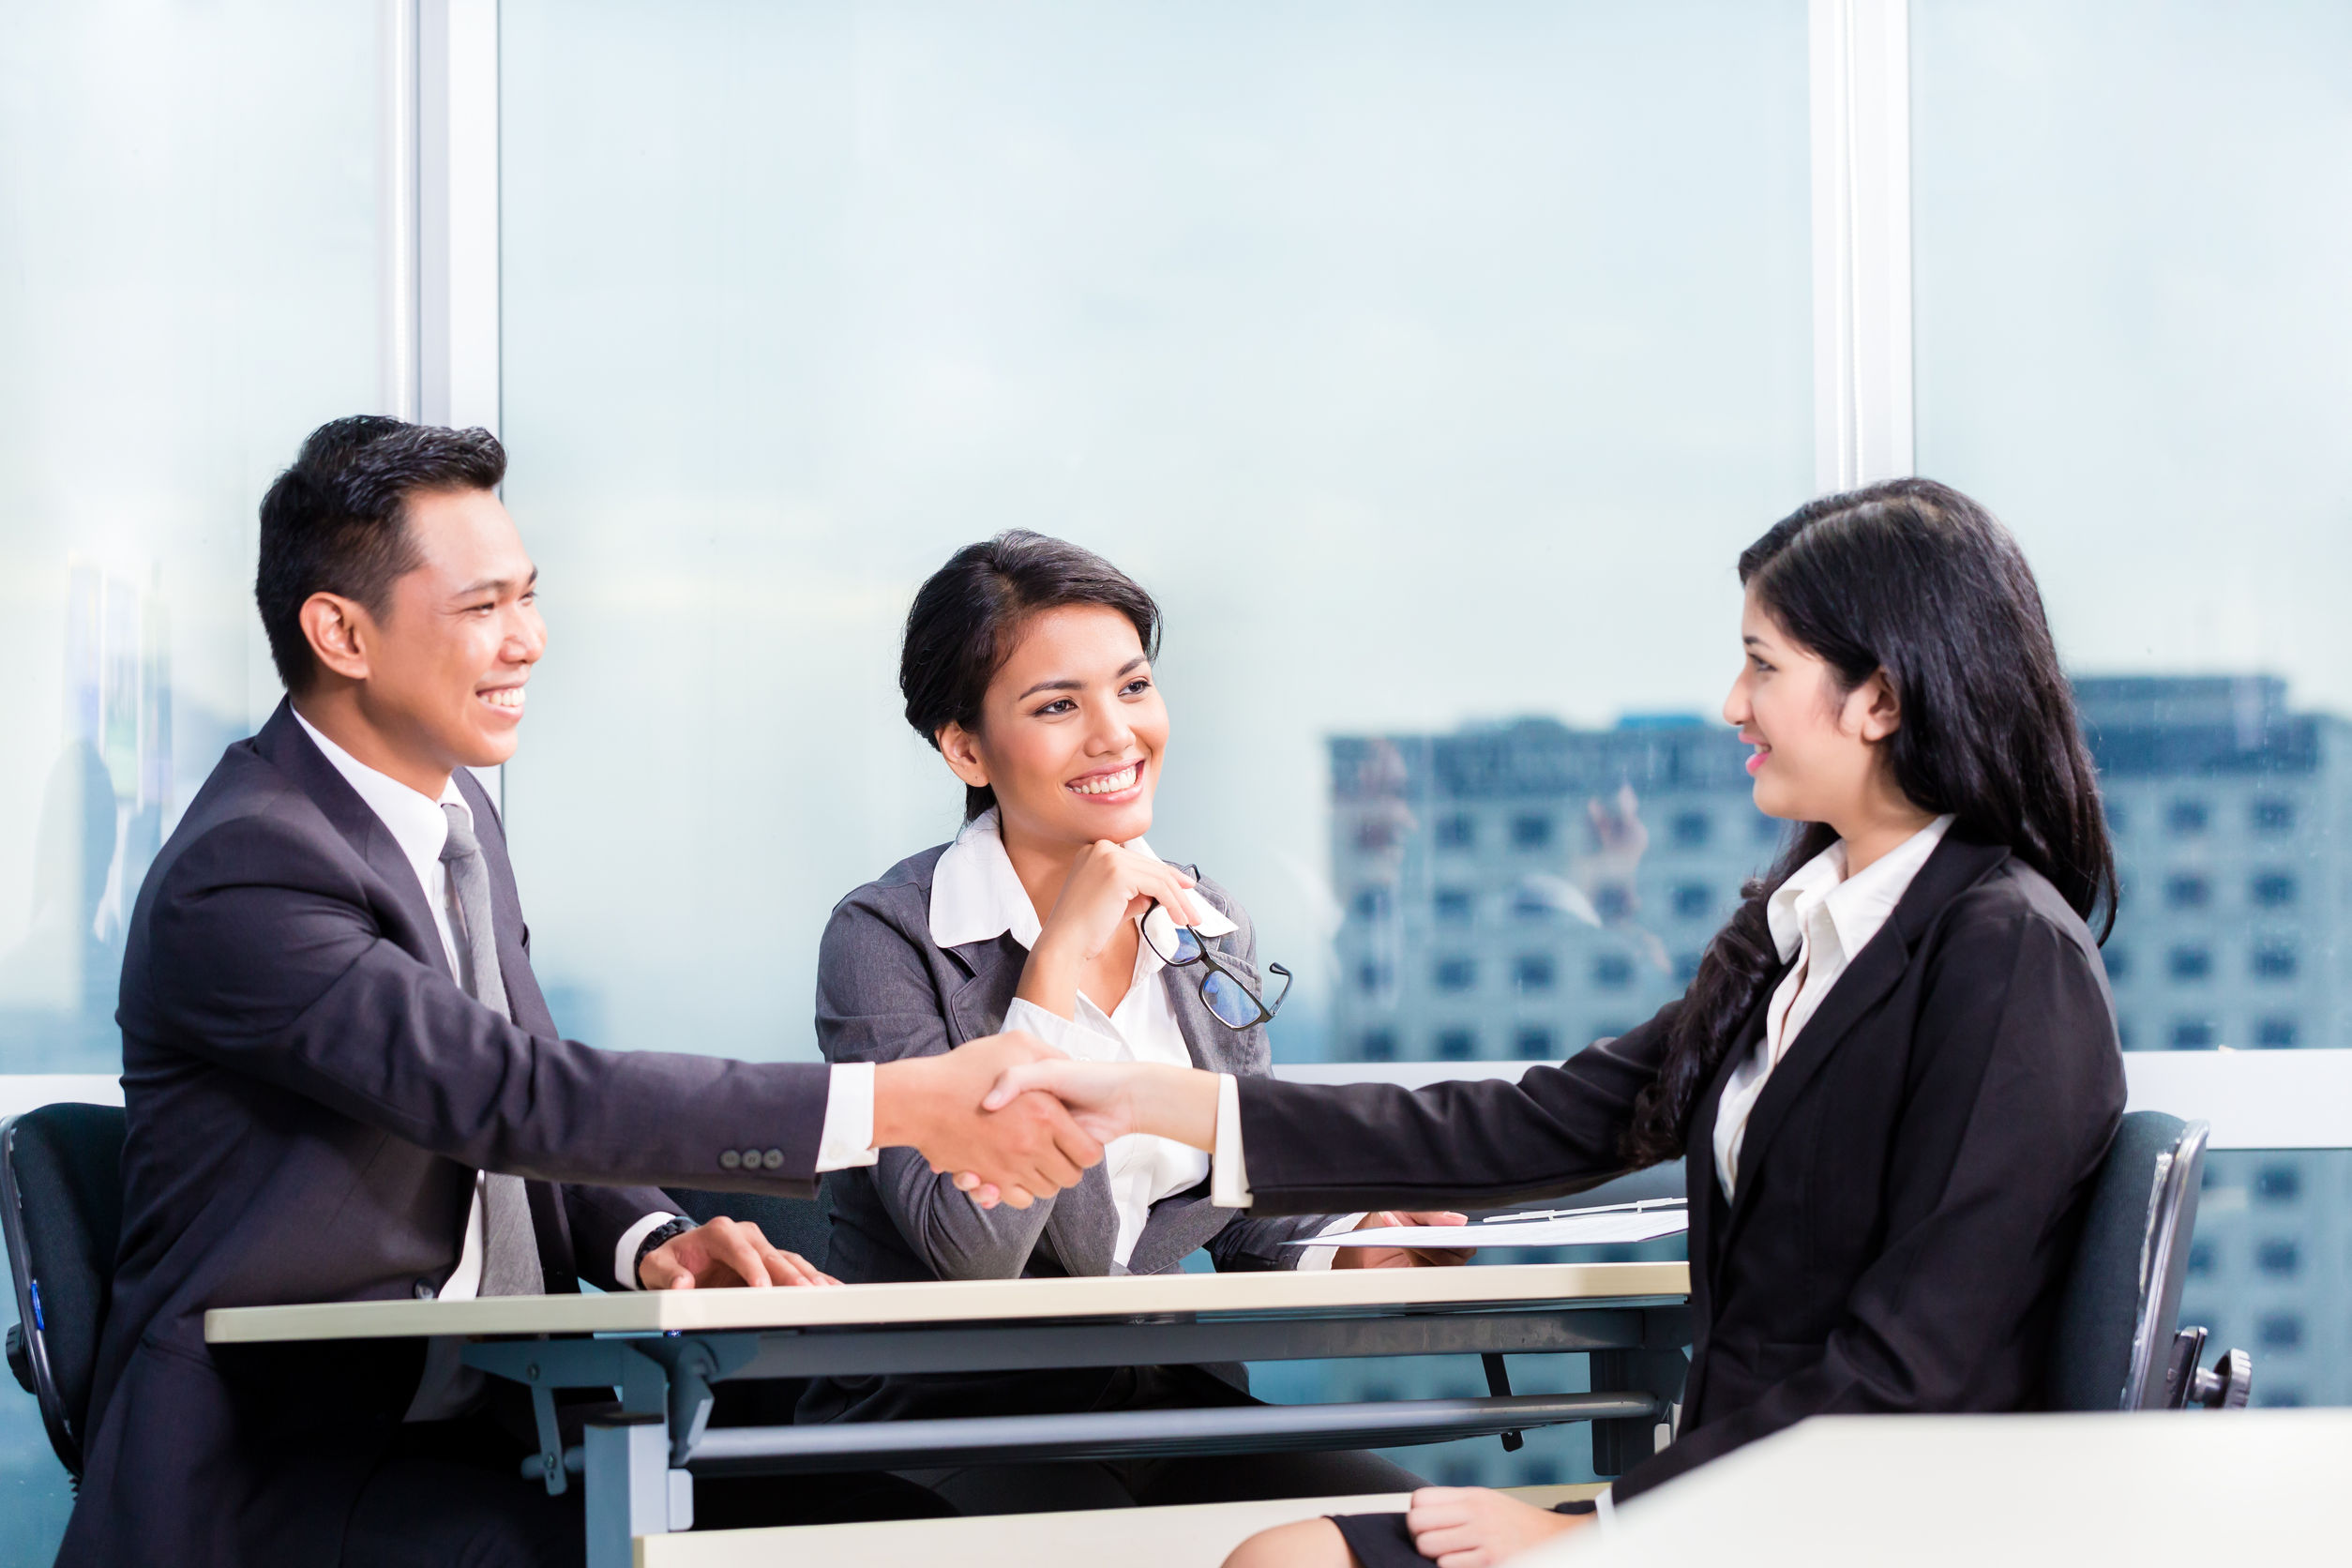 image of interview session with interviewee and two interviewers